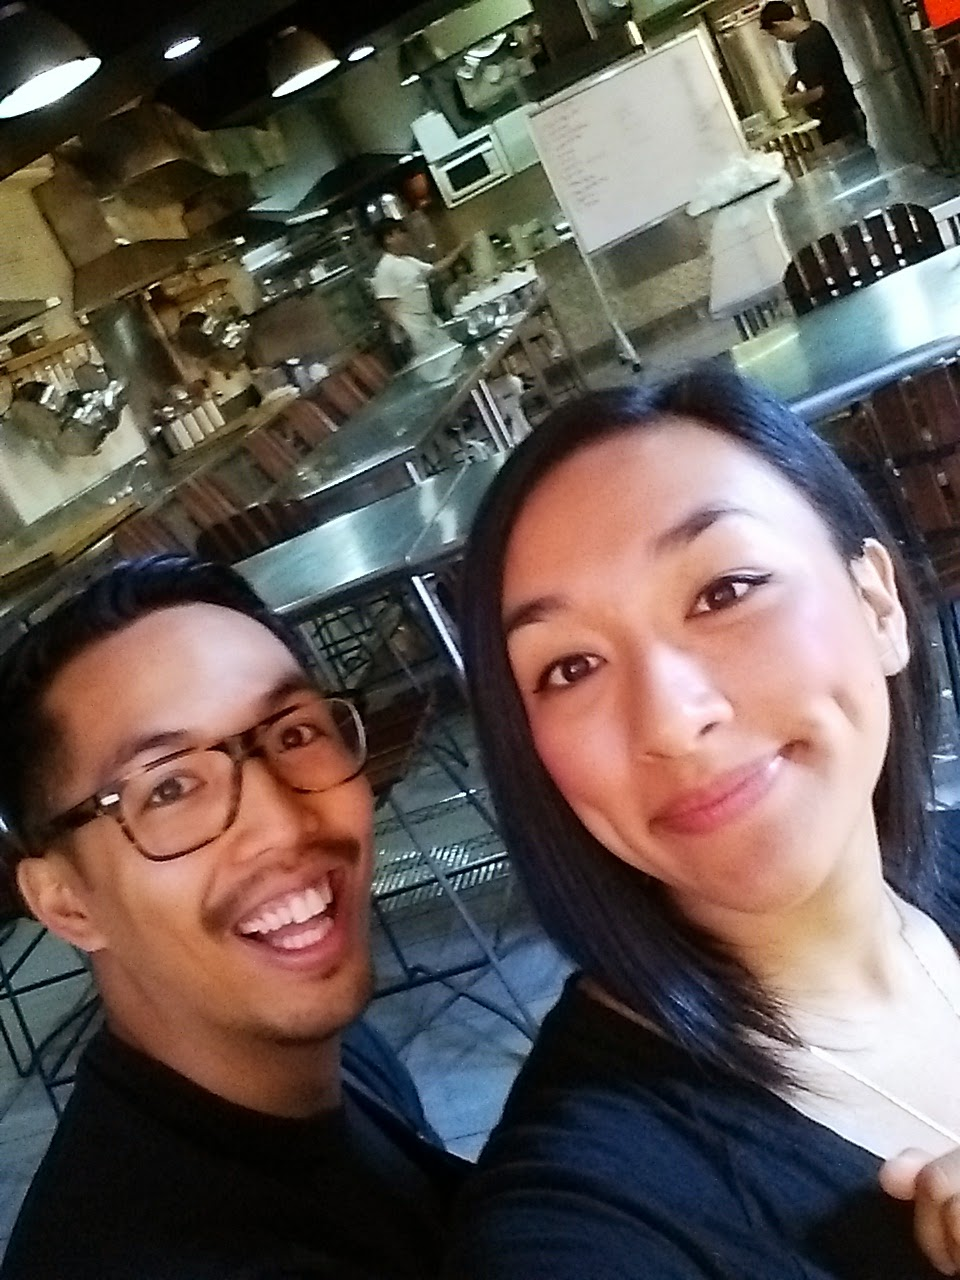 On a previous baecation, we took a cooking class in the Philippines to learn how to make various longanisa (Filipino sausage), pan de sal (filipino bread rolls), and other baked goods!